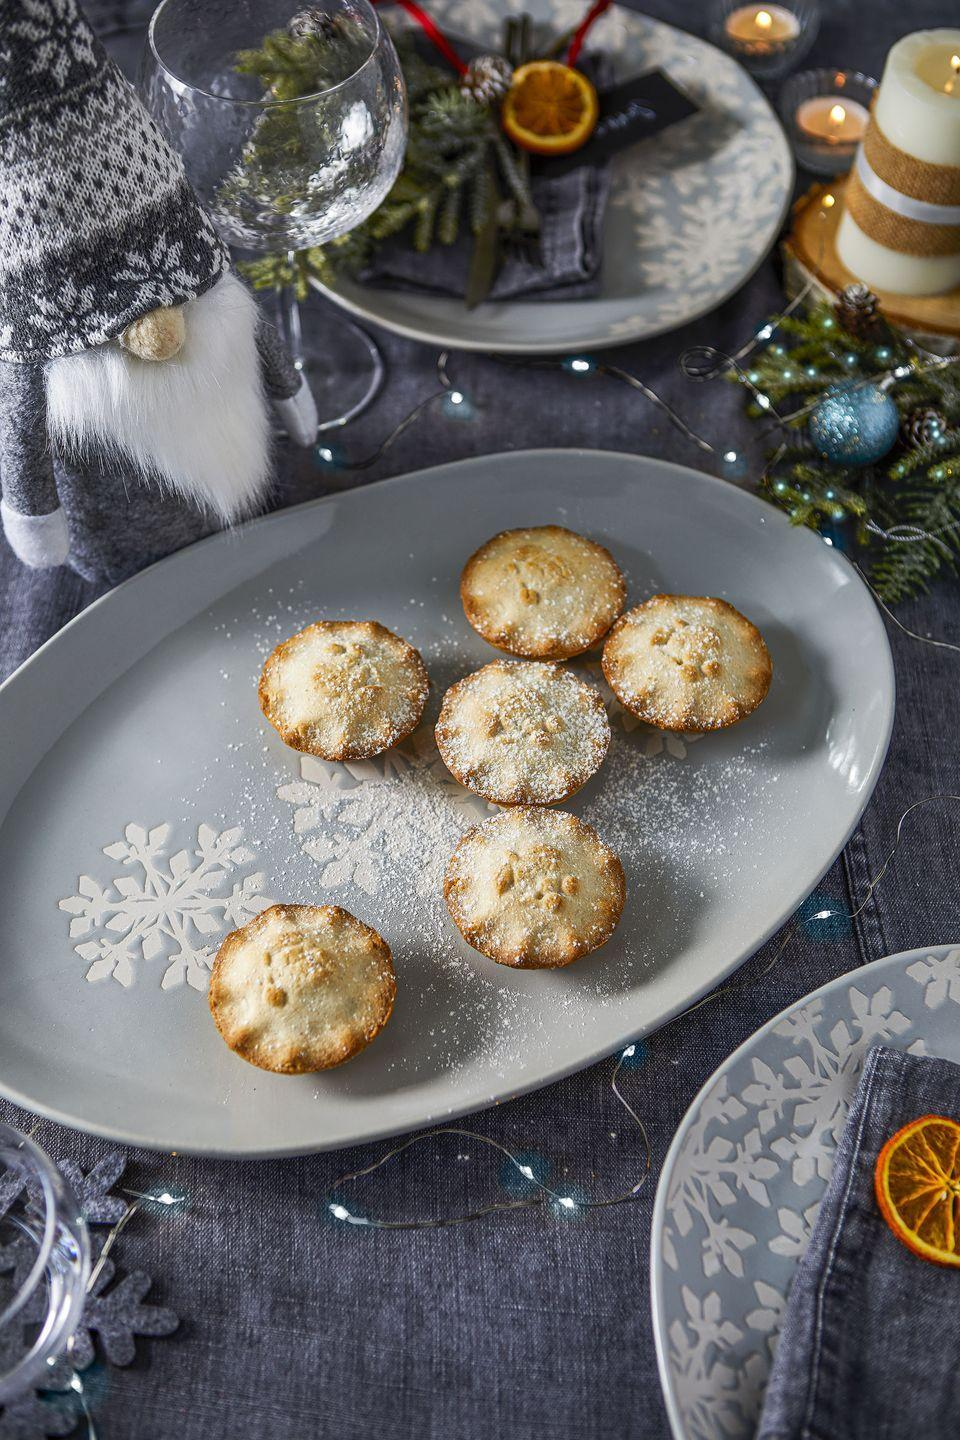 """<p>Planning on hosting a festive feast? Bring a touch of winter wonderland magic to the dining table with Tesco's Nordic Blues collection.<br></p><p>'Contemporary and cool, yet classic and comforting, the Nordic Blues dine collection will transform any dining table into a winter wonderland with its calming crisp blue and silver colour palette,' add Tesco. </p><p><strong>READ MORE</strong>: <a href=""""https://www.housebeautiful.com/uk/decorate/looks/a35055193/christmas-table-ideas/"""" rel=""""nofollow noopener"""" target=""""_blank"""" data-ylk=""""slk:How to decorate and style your Christmas table"""" class=""""link rapid-noclick-resp"""">How to decorate and style your Christmas table</a></p>"""